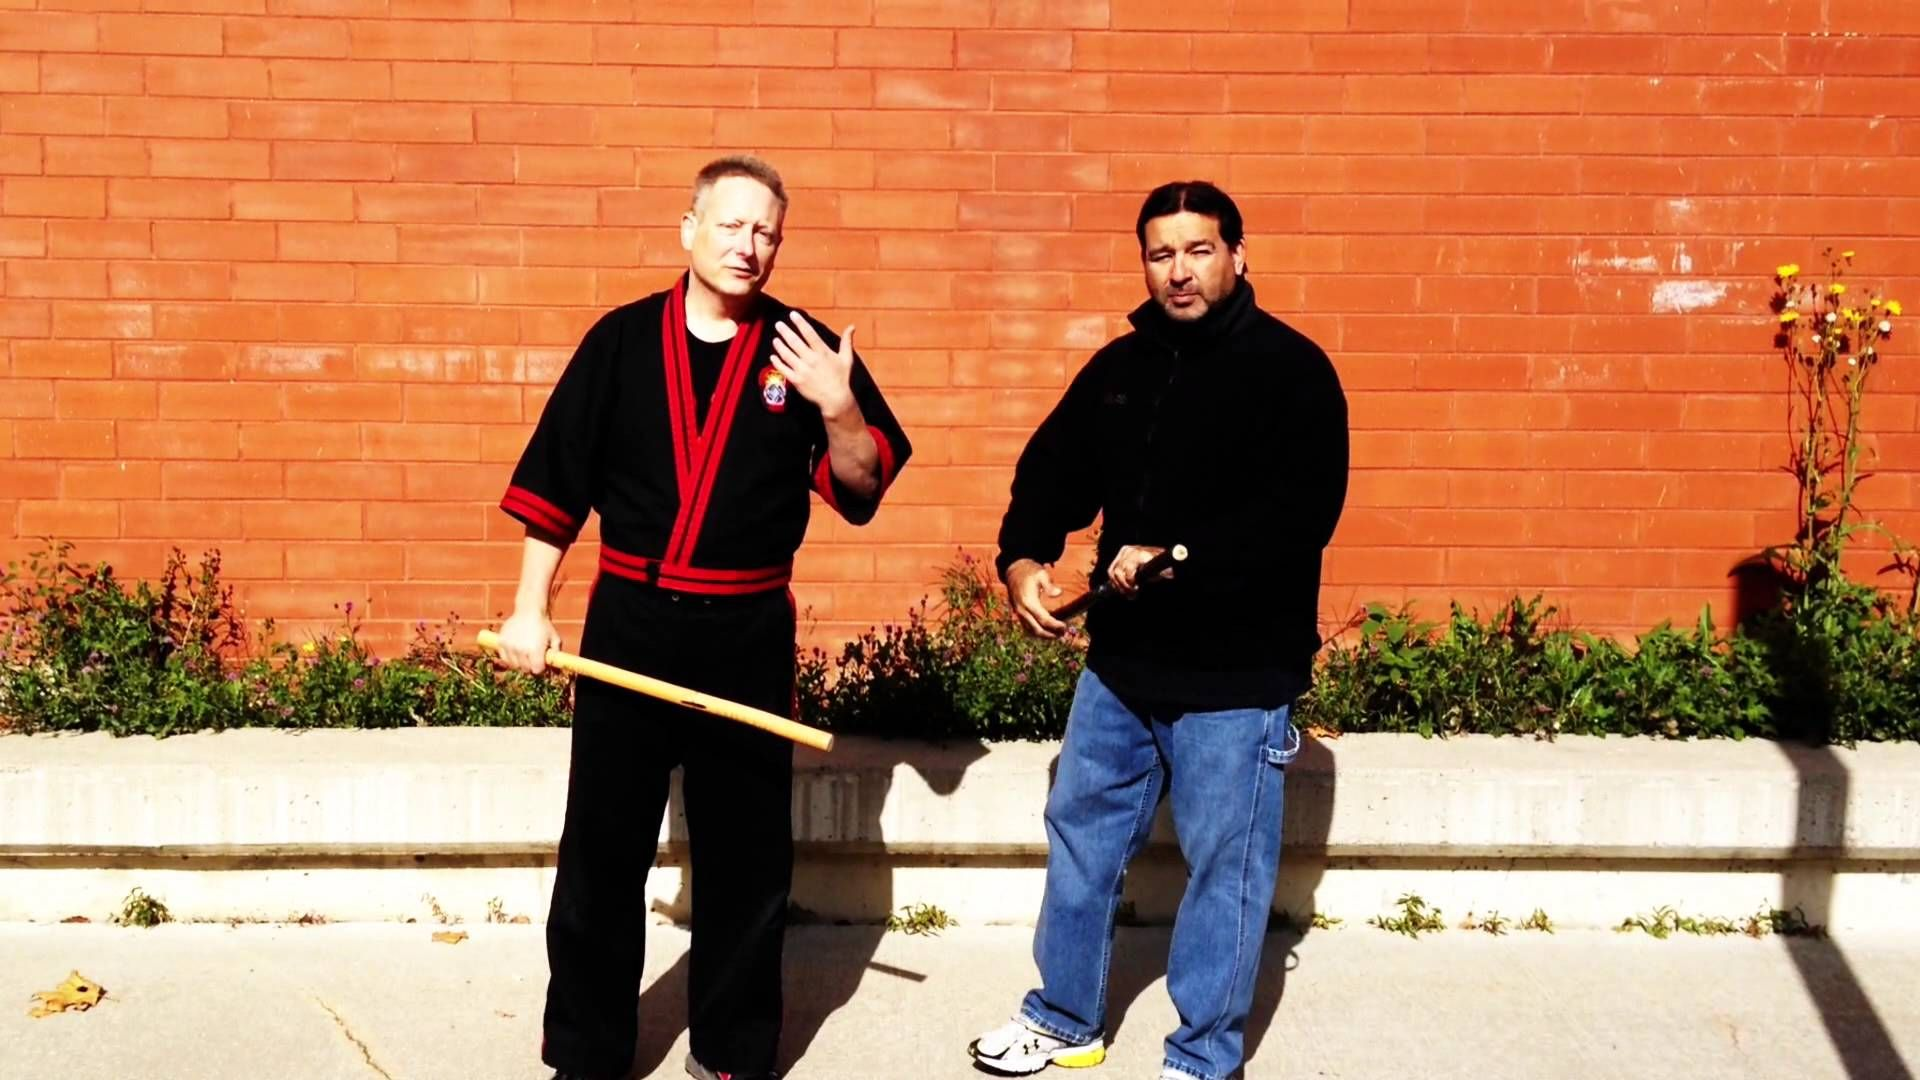 I address an issue inherent to the feeder that causes problems among training partners. http://www.bamboospiritmartialarts.com http://www.facebook.com/Bamboo...